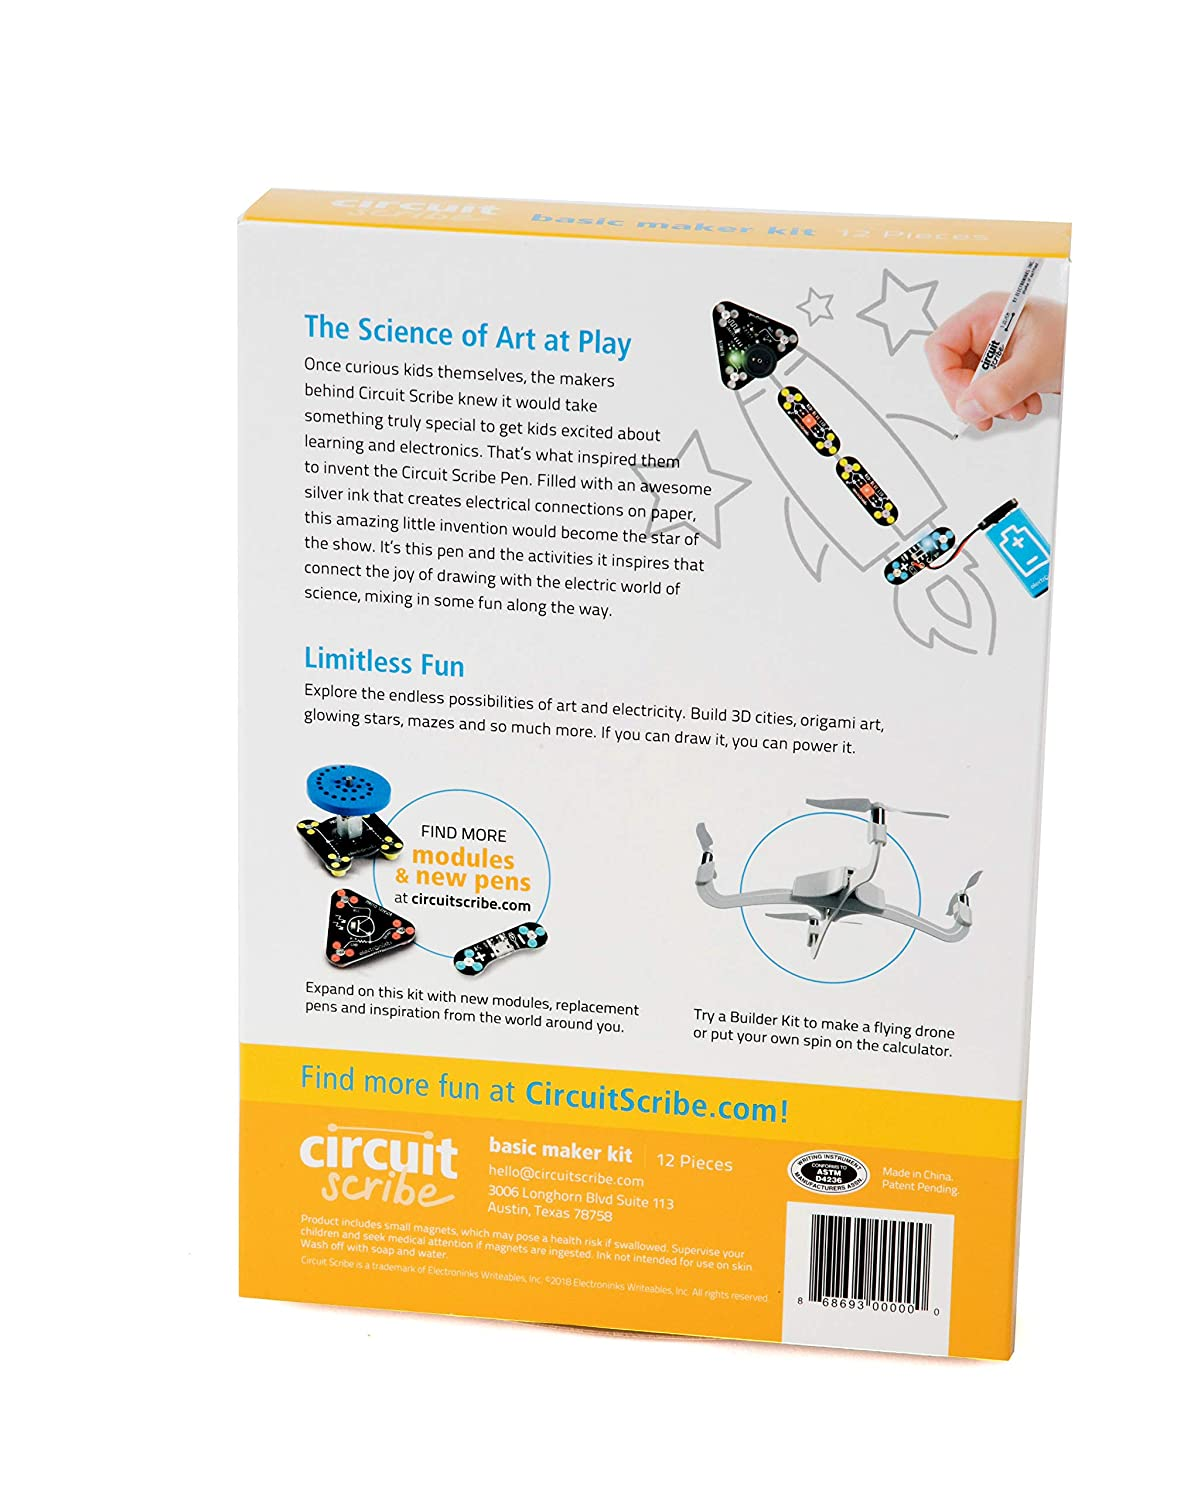 Circuit Scribe Basic Kit Includes Conductive Silver Digital Circuits And 266 Ratings Simulate Electronic Using Ink Pen To Learn Explore Create Your Own Switches Toys Games